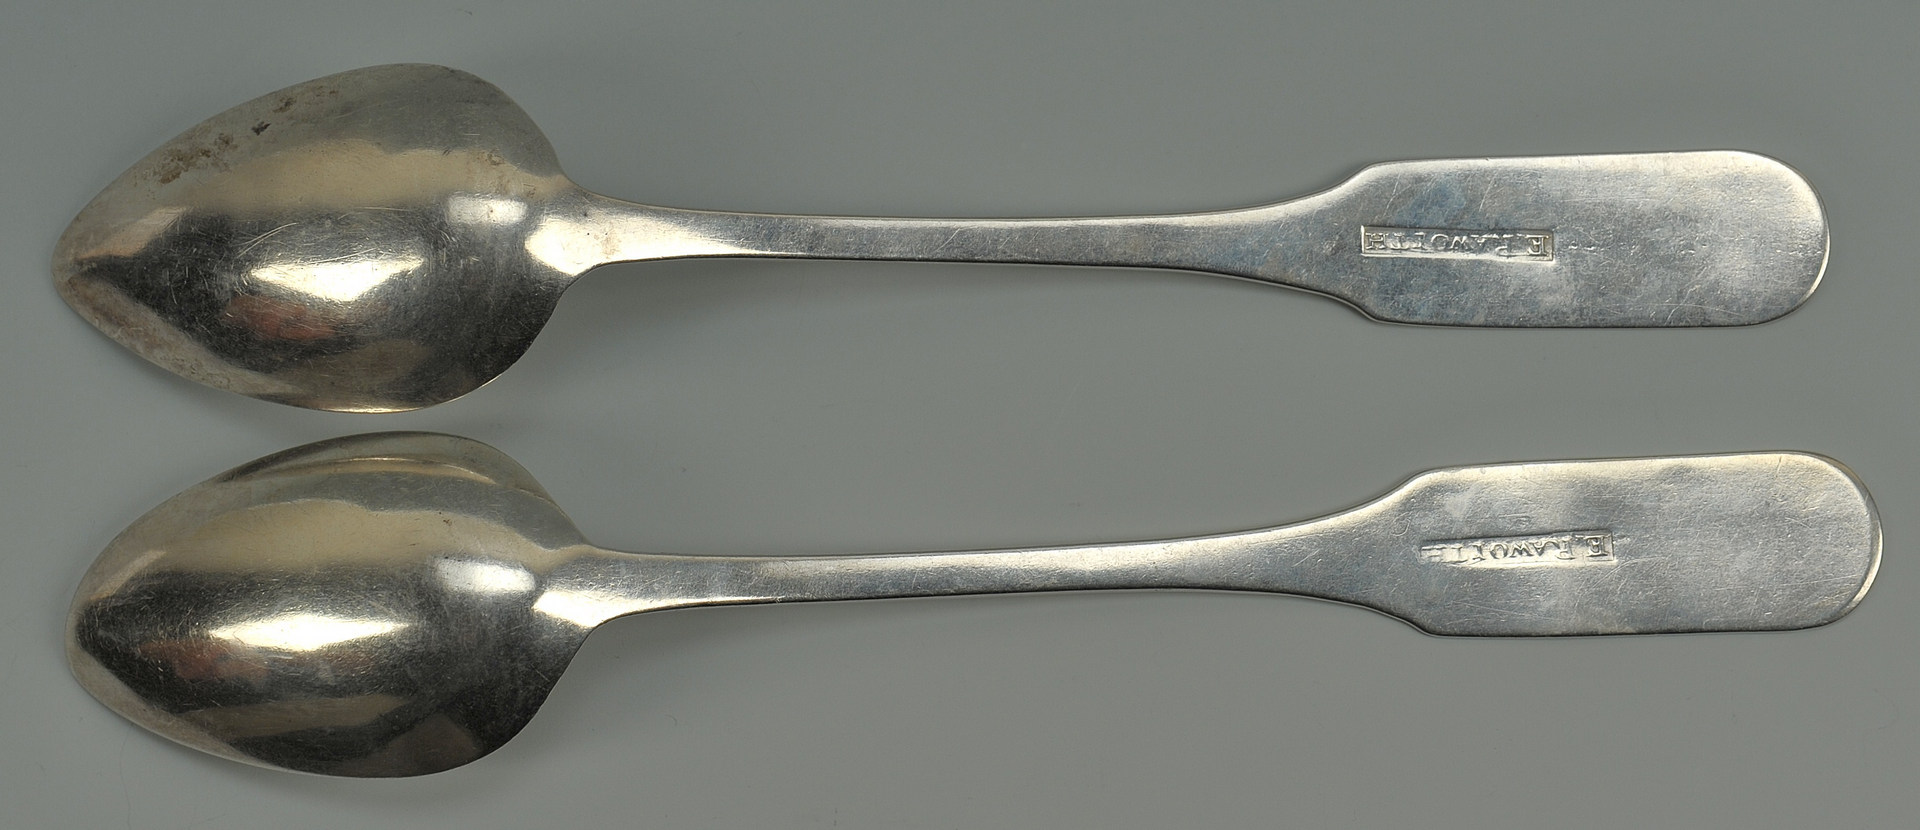 Lot 42: Two Nashville coin silver spoons, E. Raworth